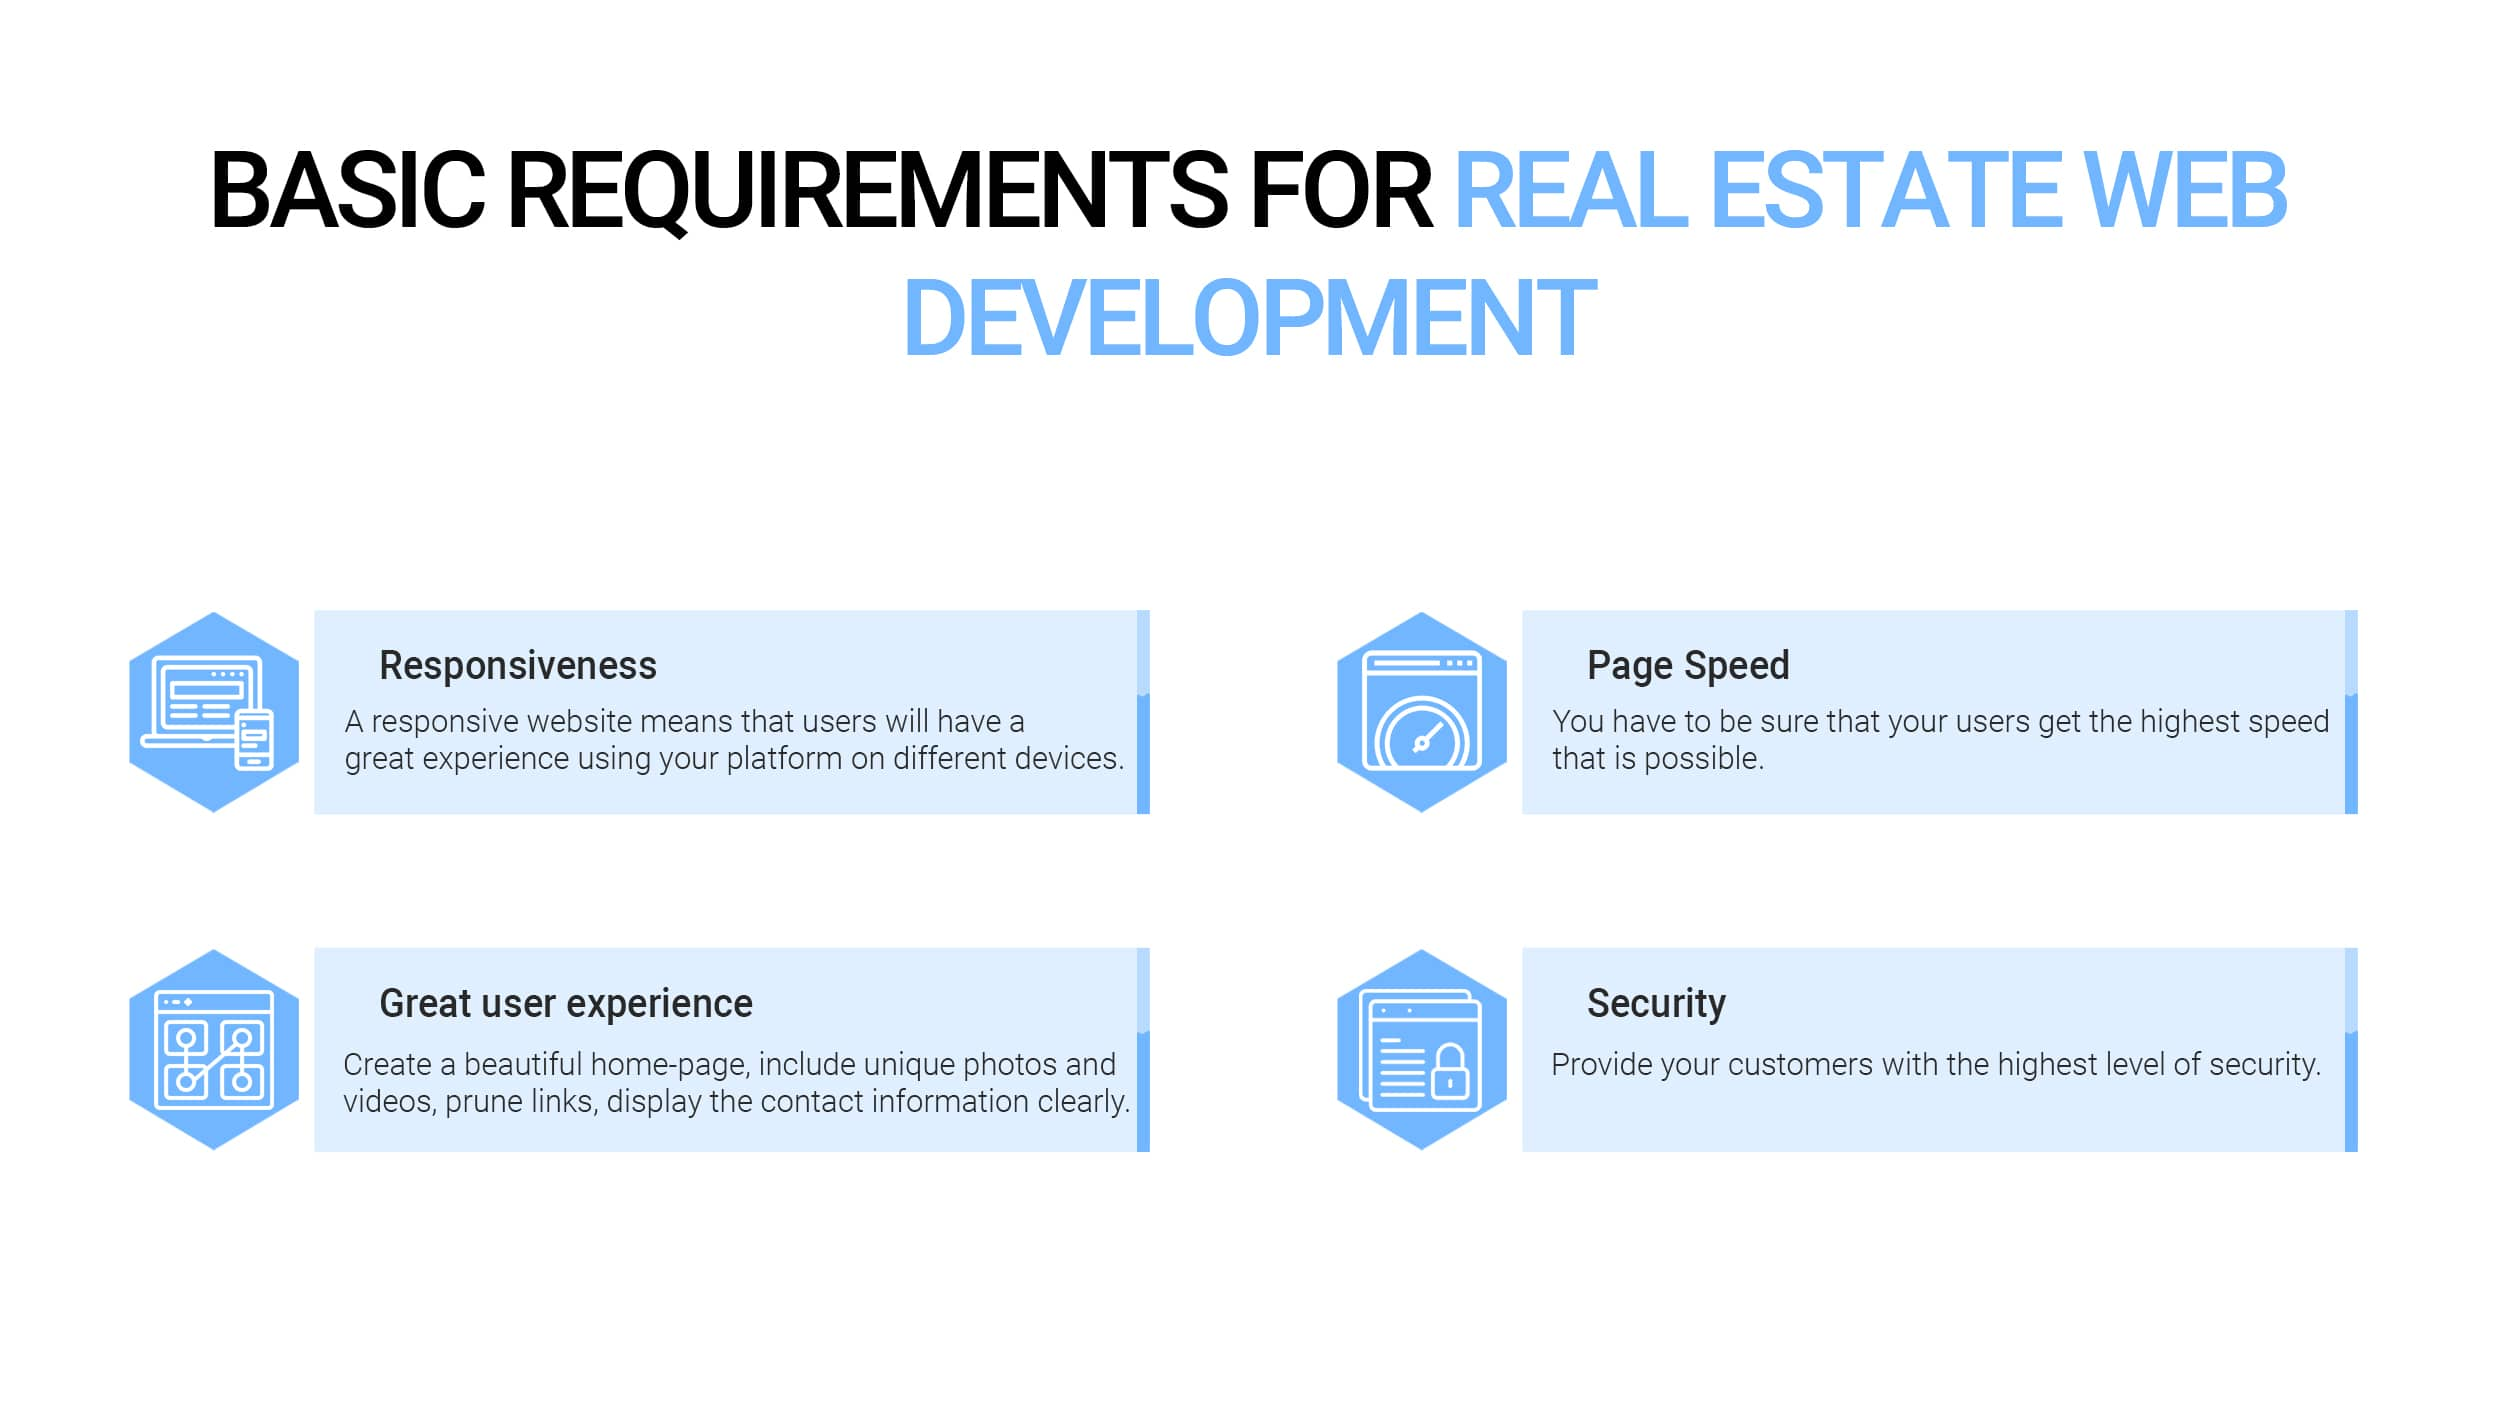 Real estate website requirements